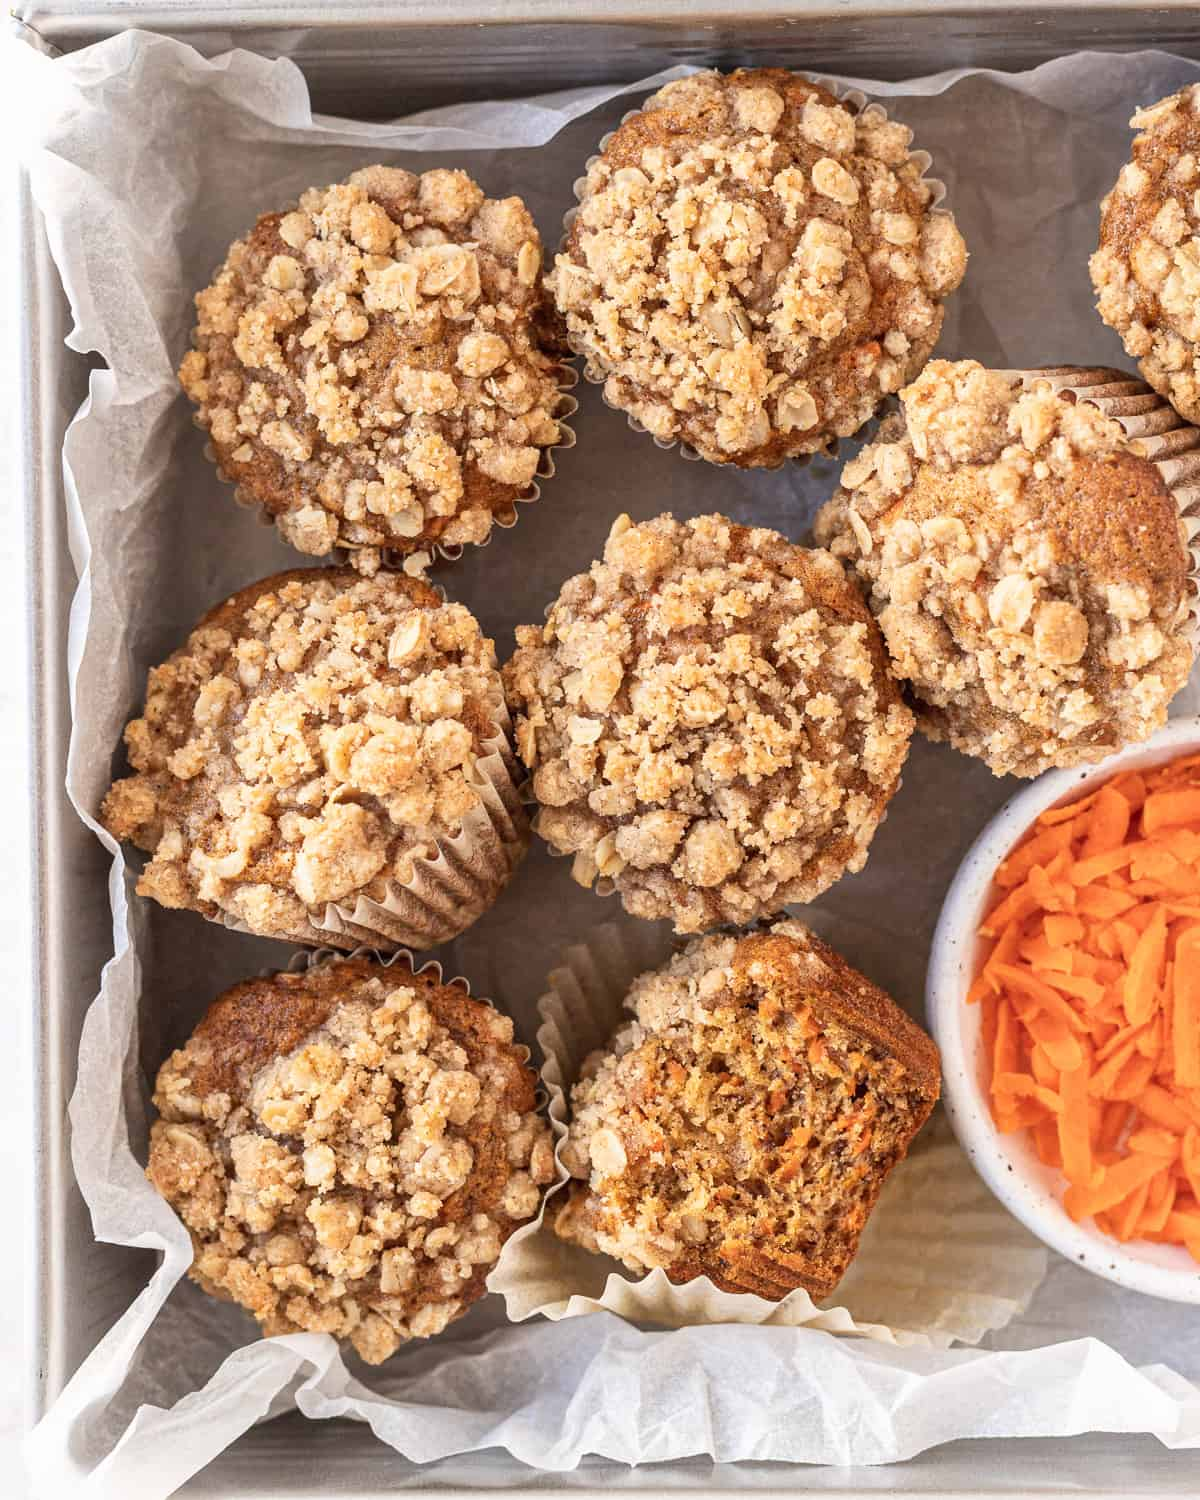 banana carrot muffins in a parchment-paper lined dish with a bowl of grated carrots